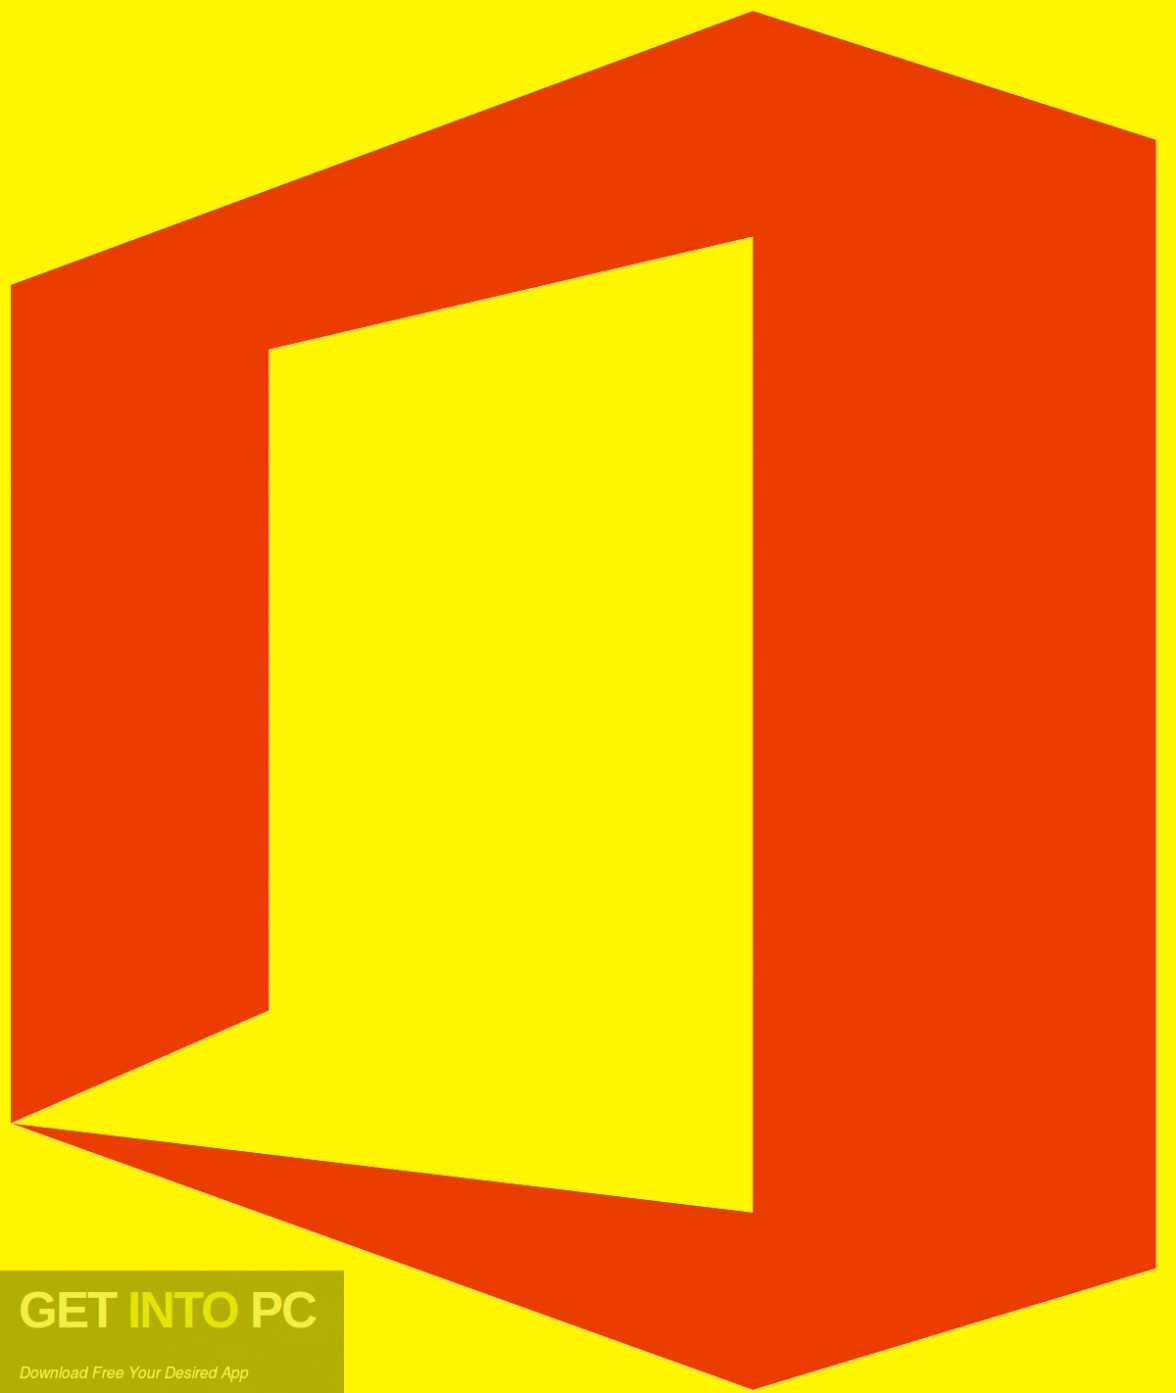 Office 2016 Professional Plus Updated Aug 2019 Free Download-GetintoPC.com